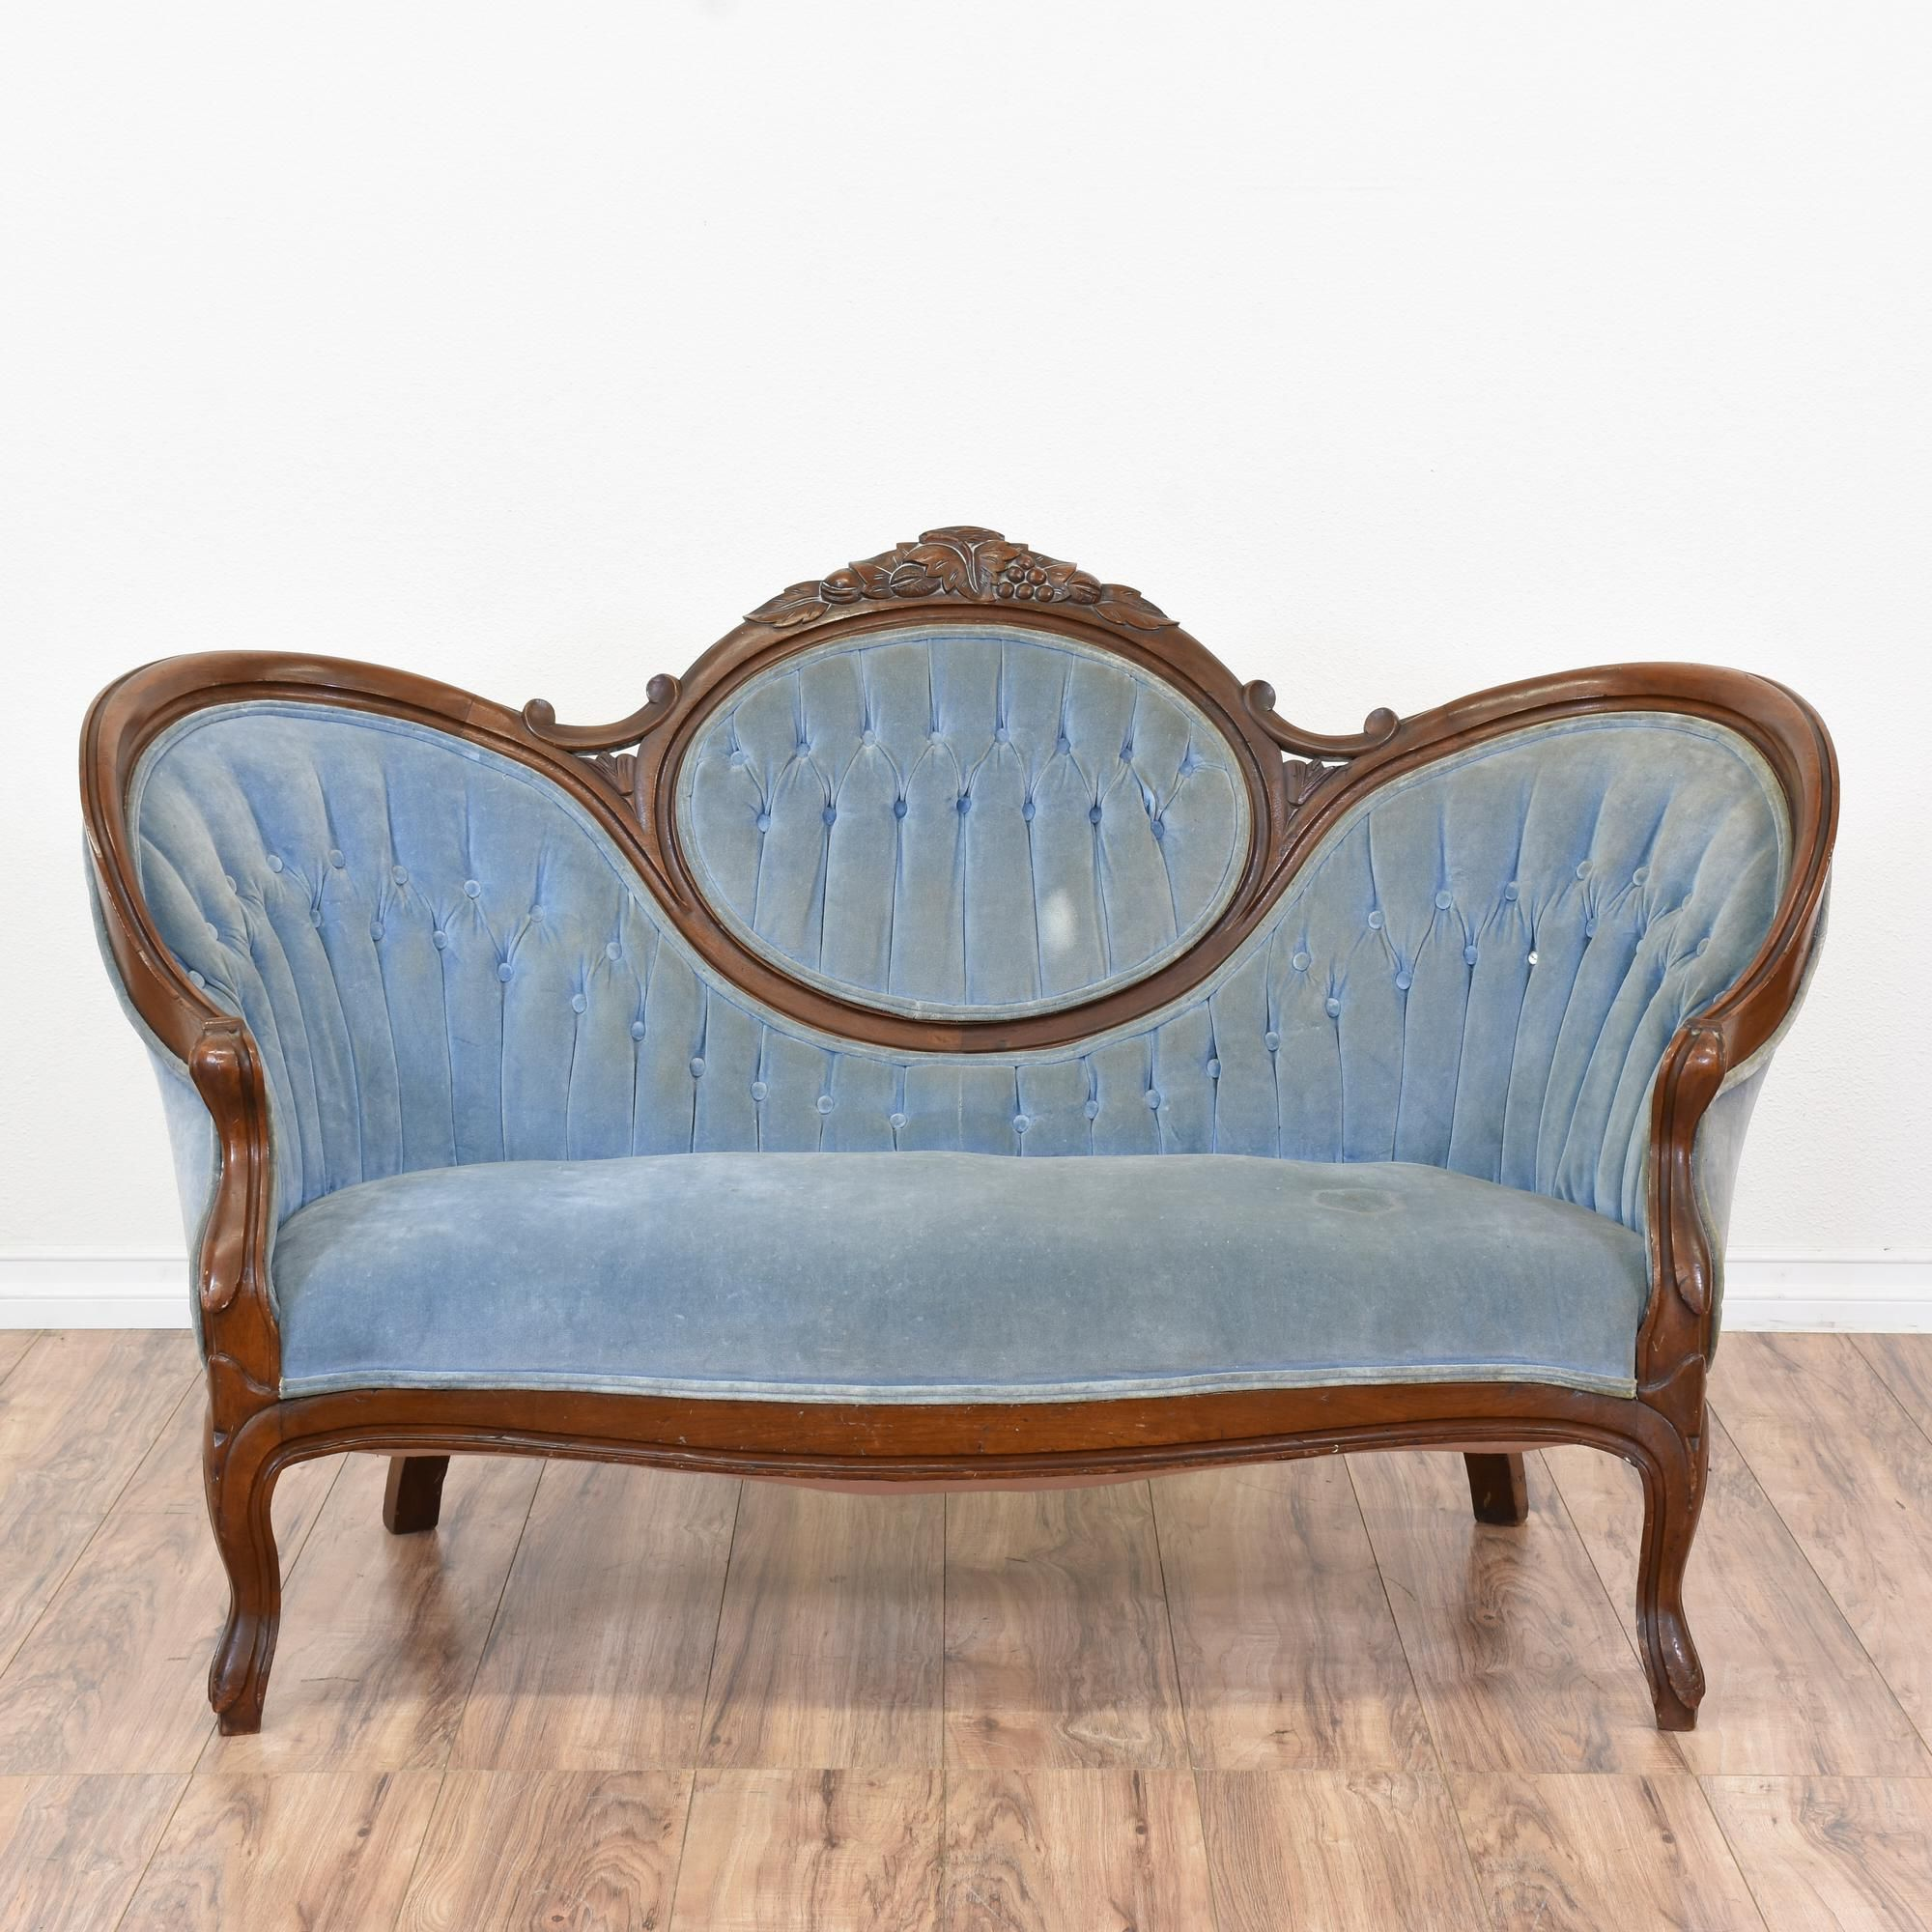 This victorian sofa is upholstered in a durable light blue velvet